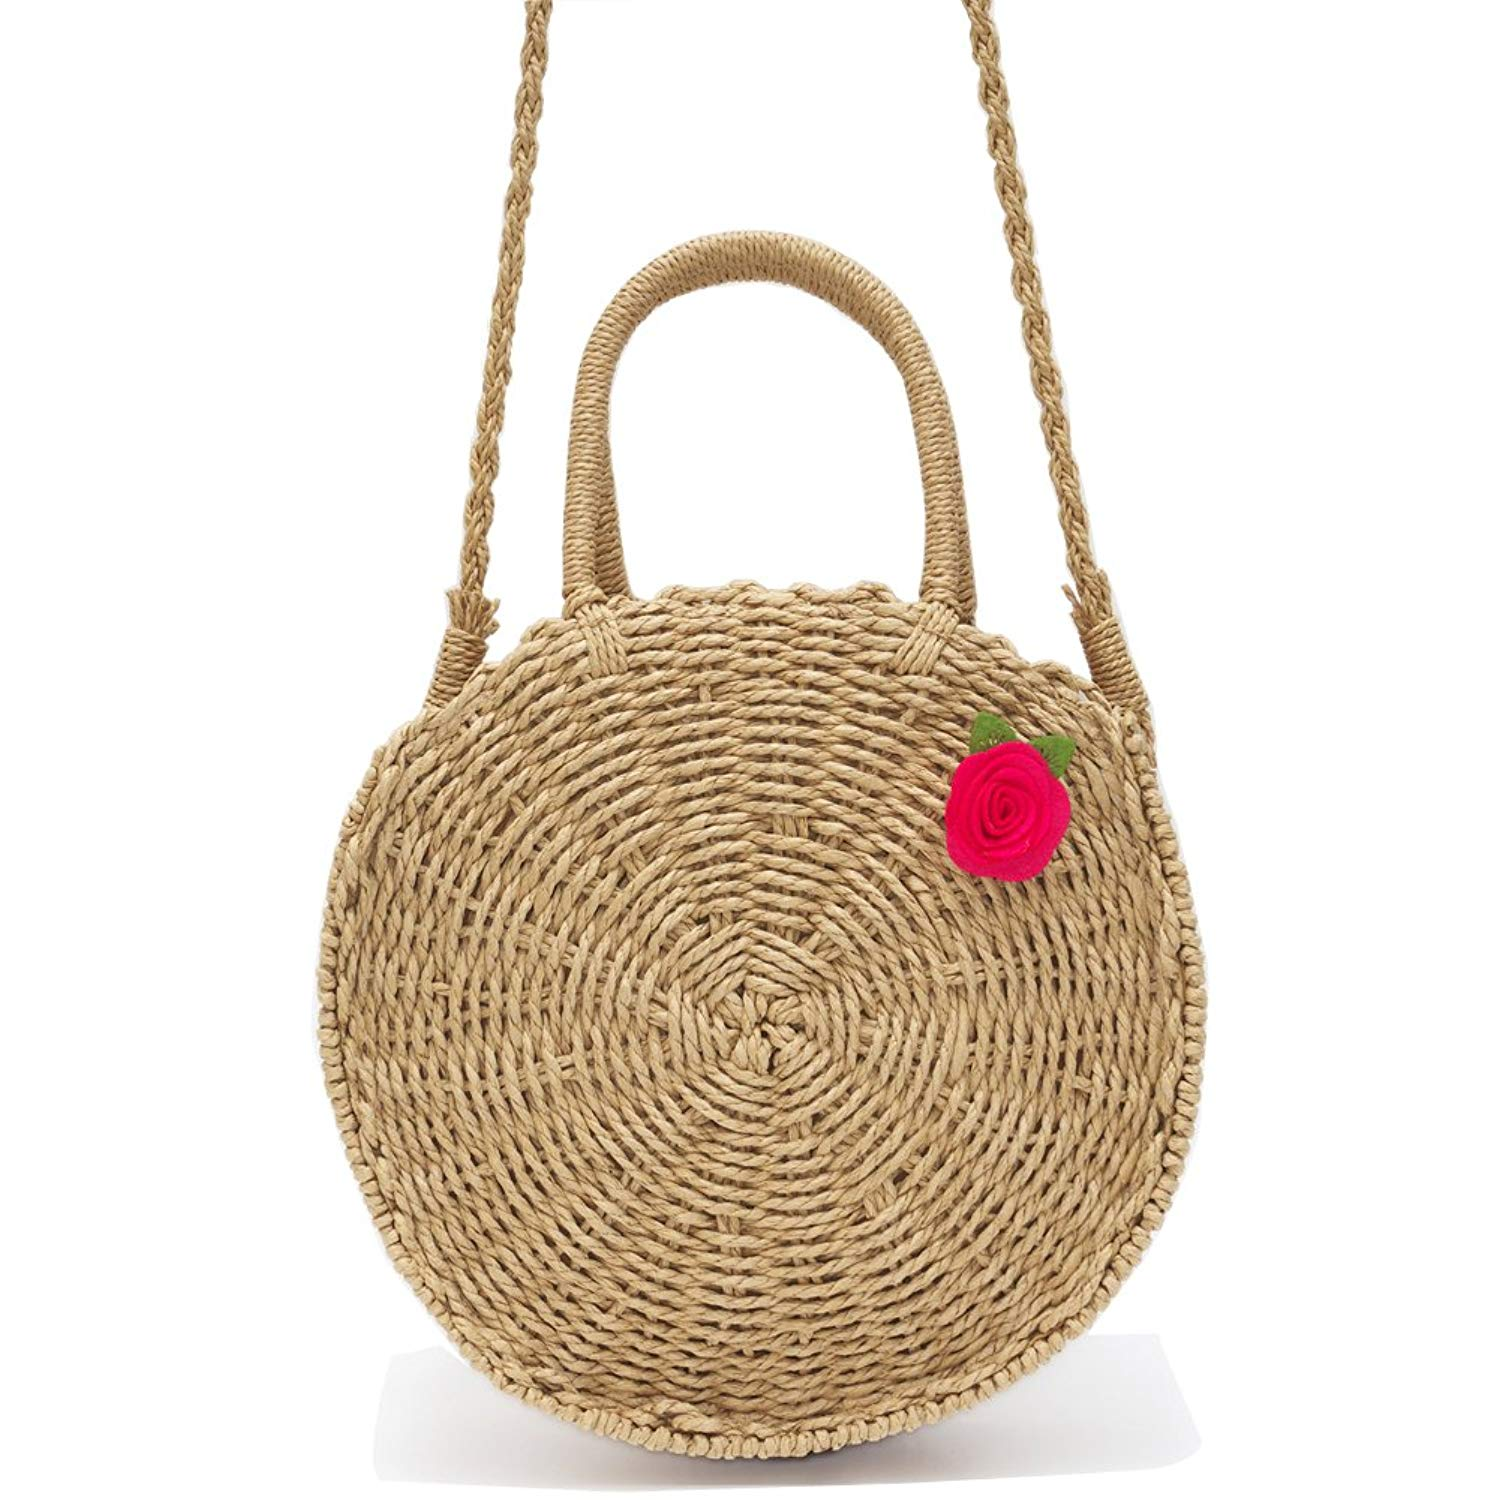 d09329f247c3 Get Quotations · DSAKGTE Round Straw Bag Rattan Woven Purse Womens  Crossbody Beach Bag Handbags